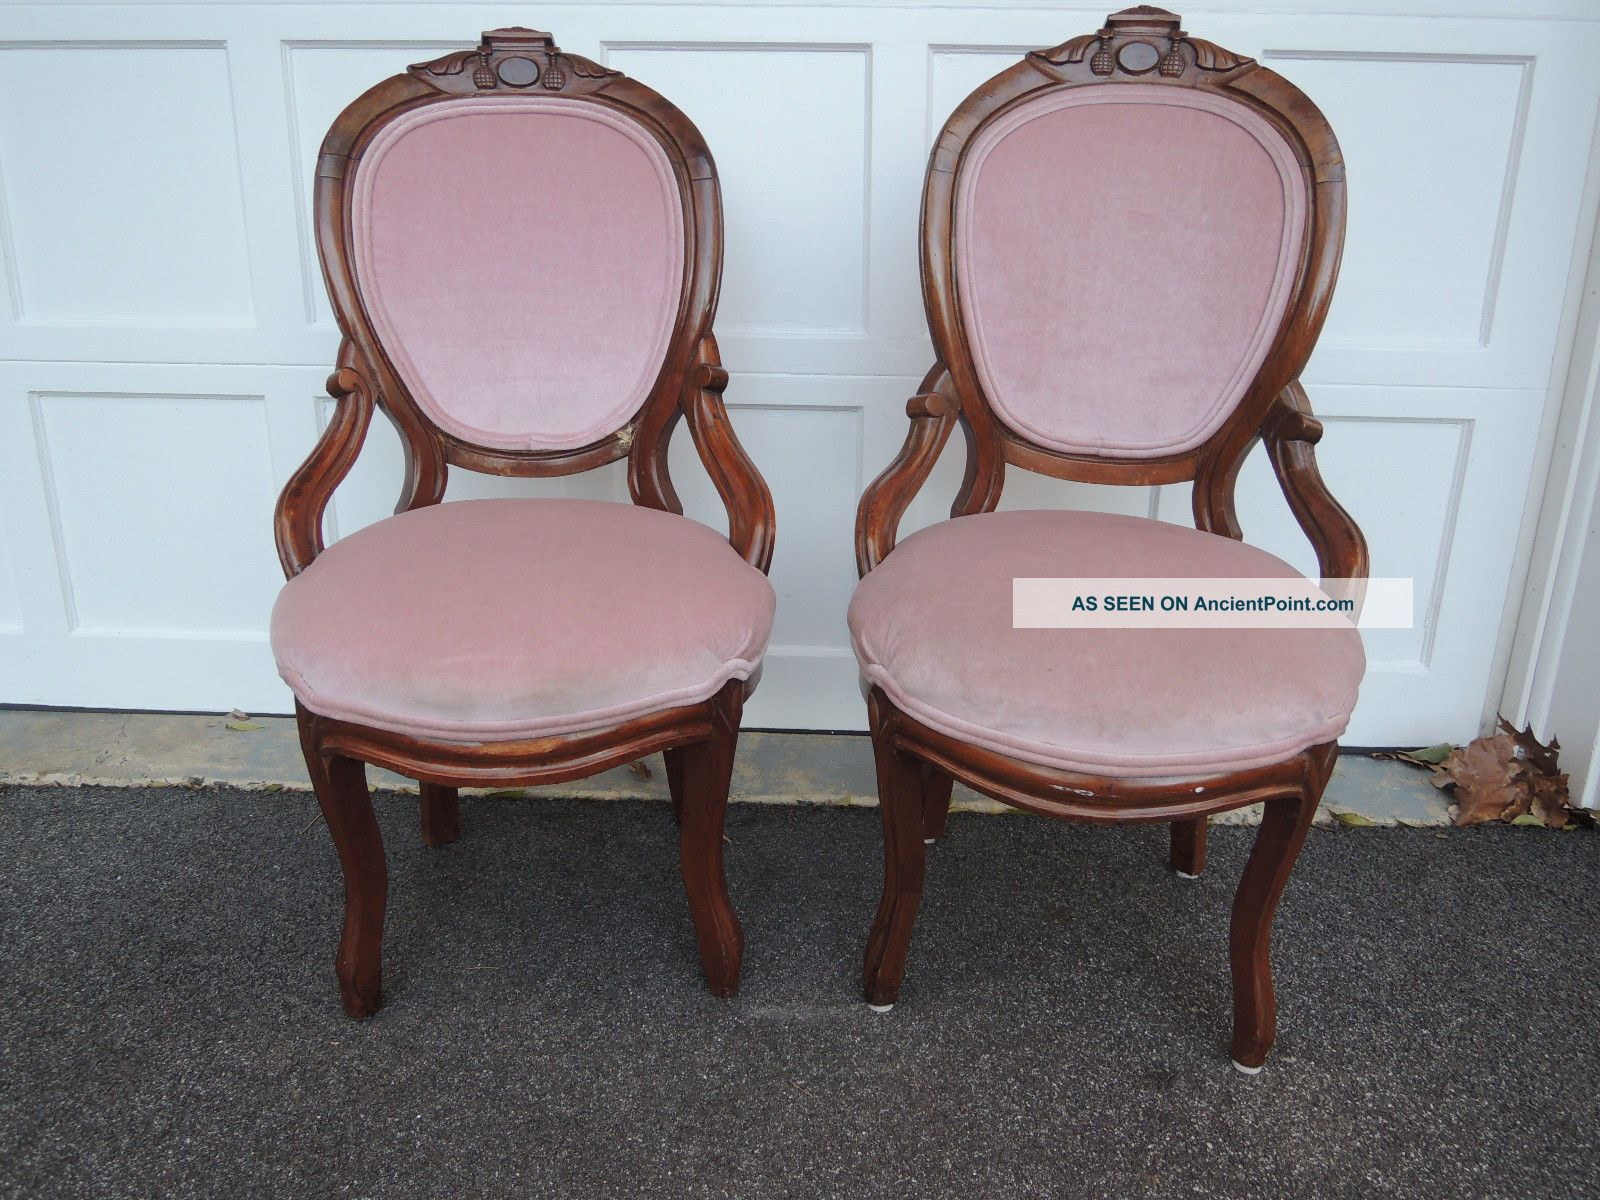 Two Antique Victorian Parlor Chairs Newly Upholstered - 1900-1950 photo